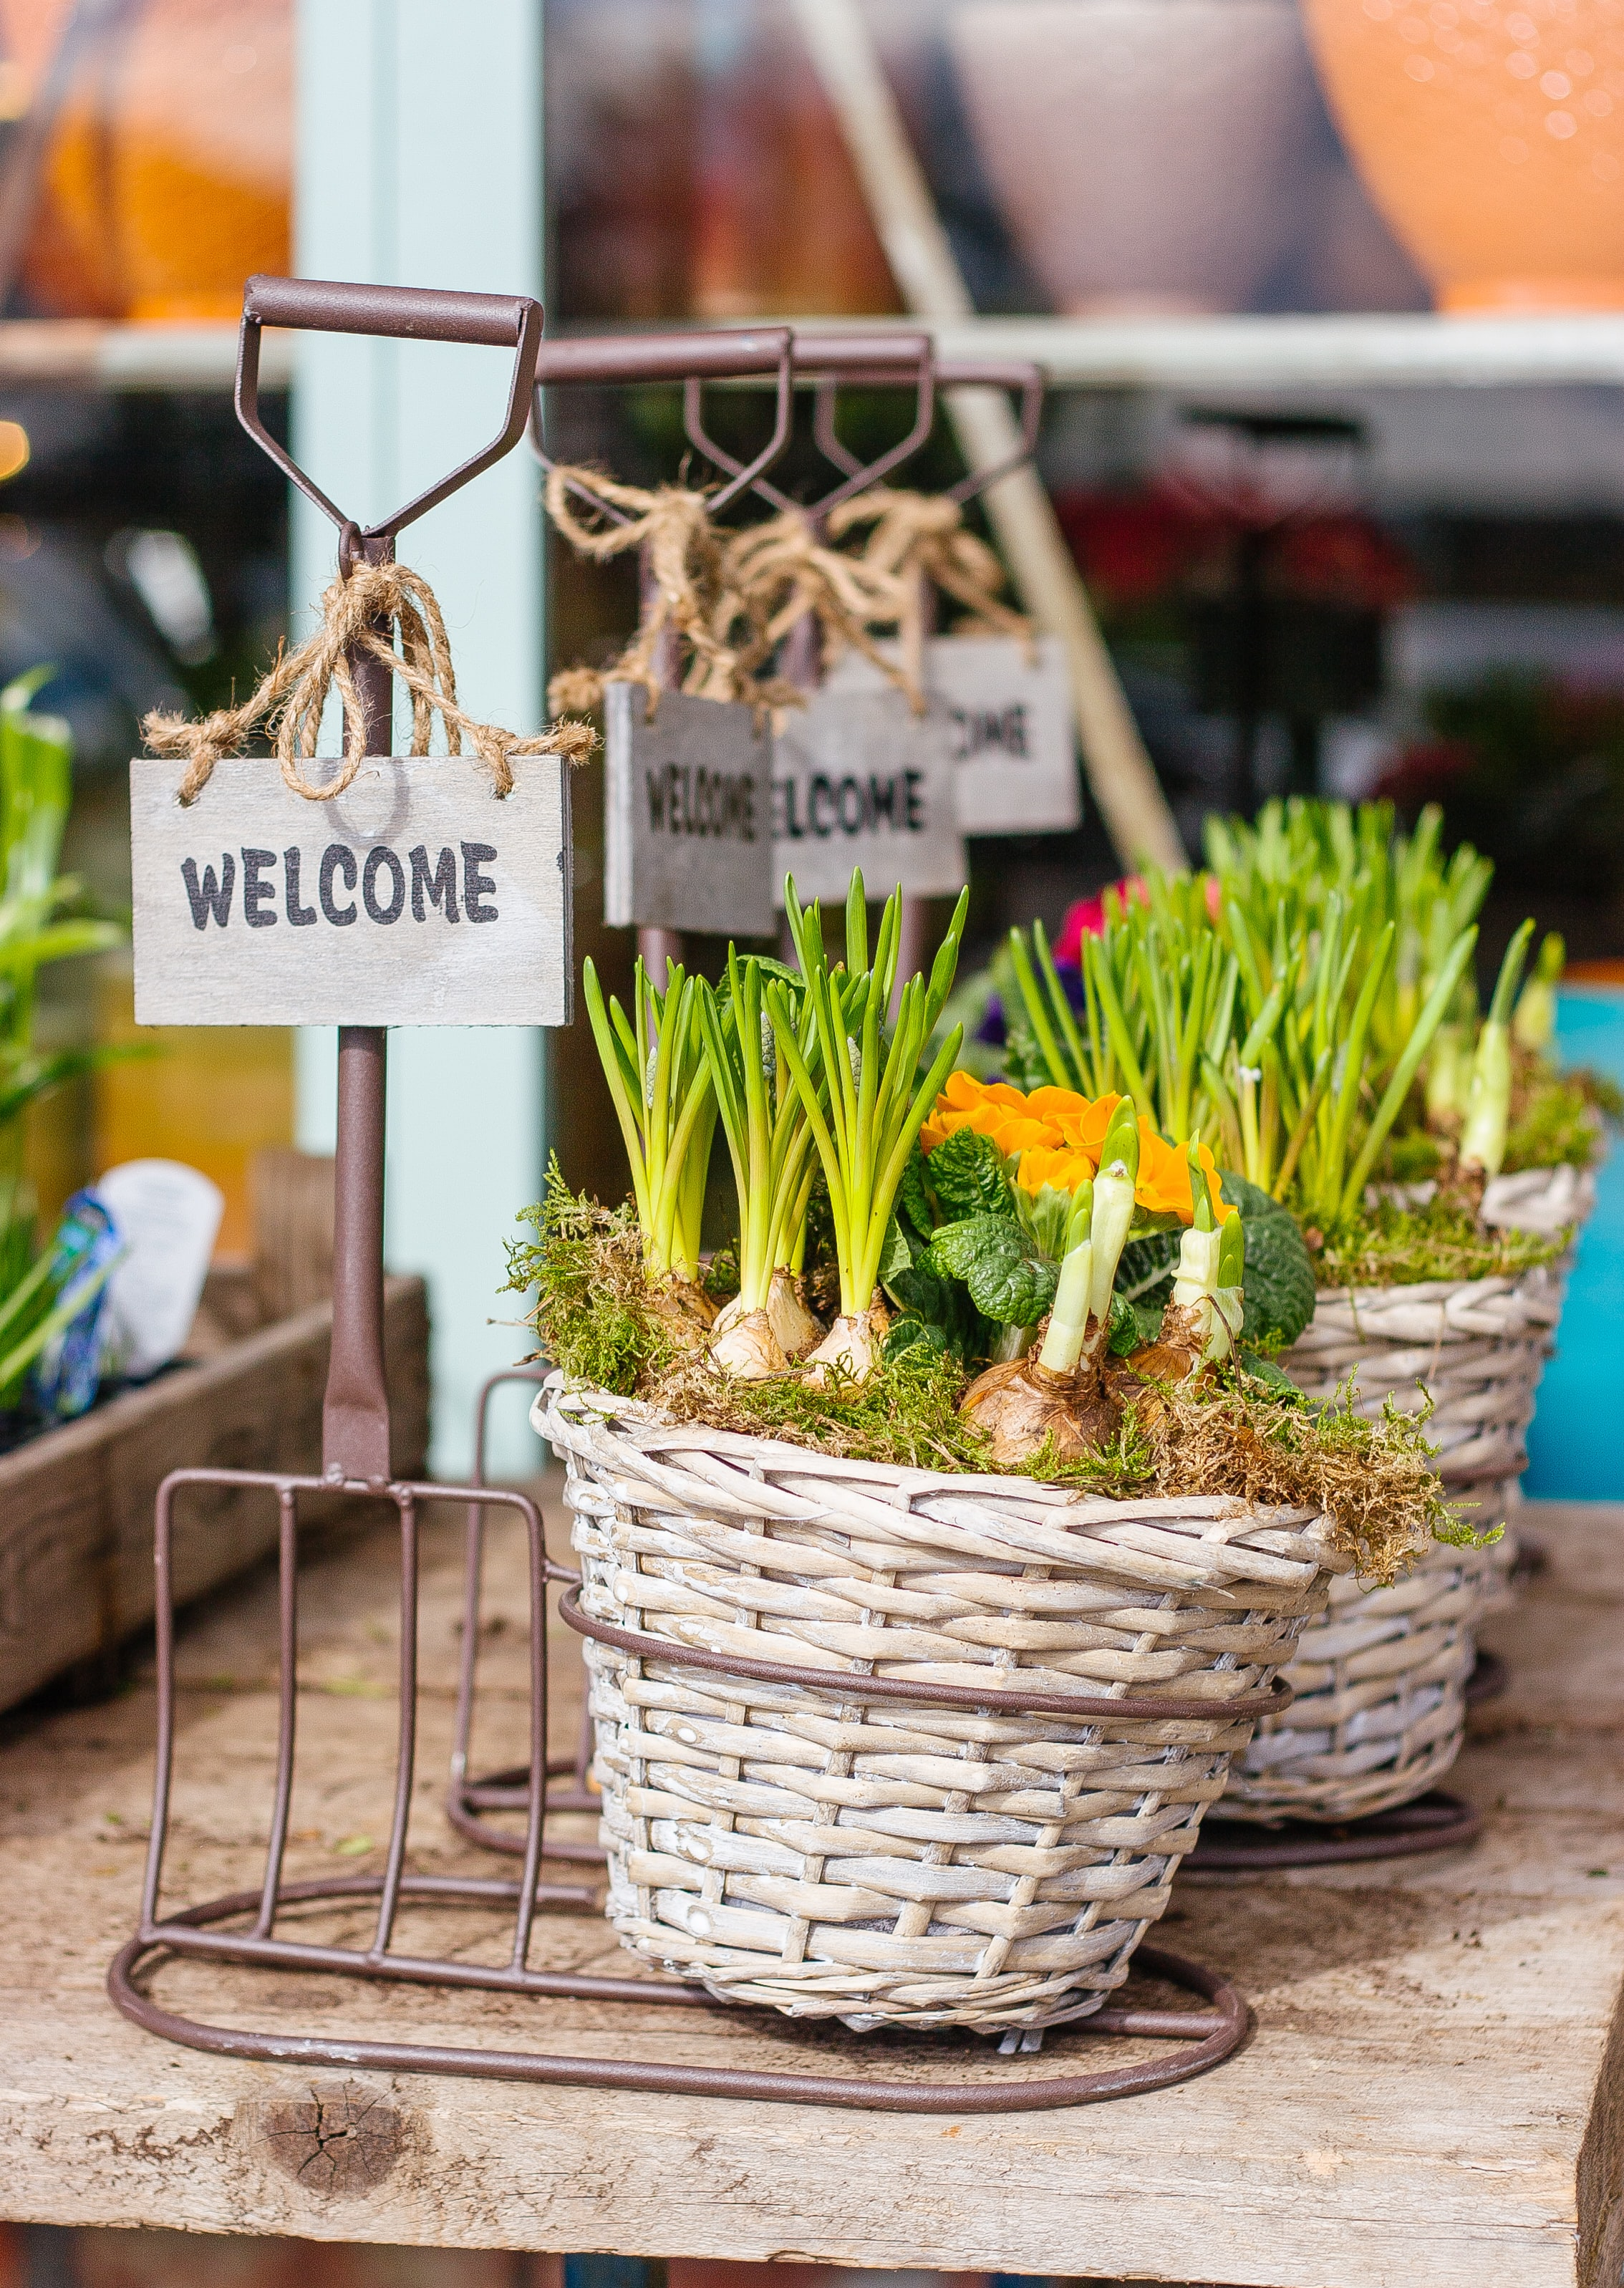 Twine basket with welcome sign at garden market with plants in Spring